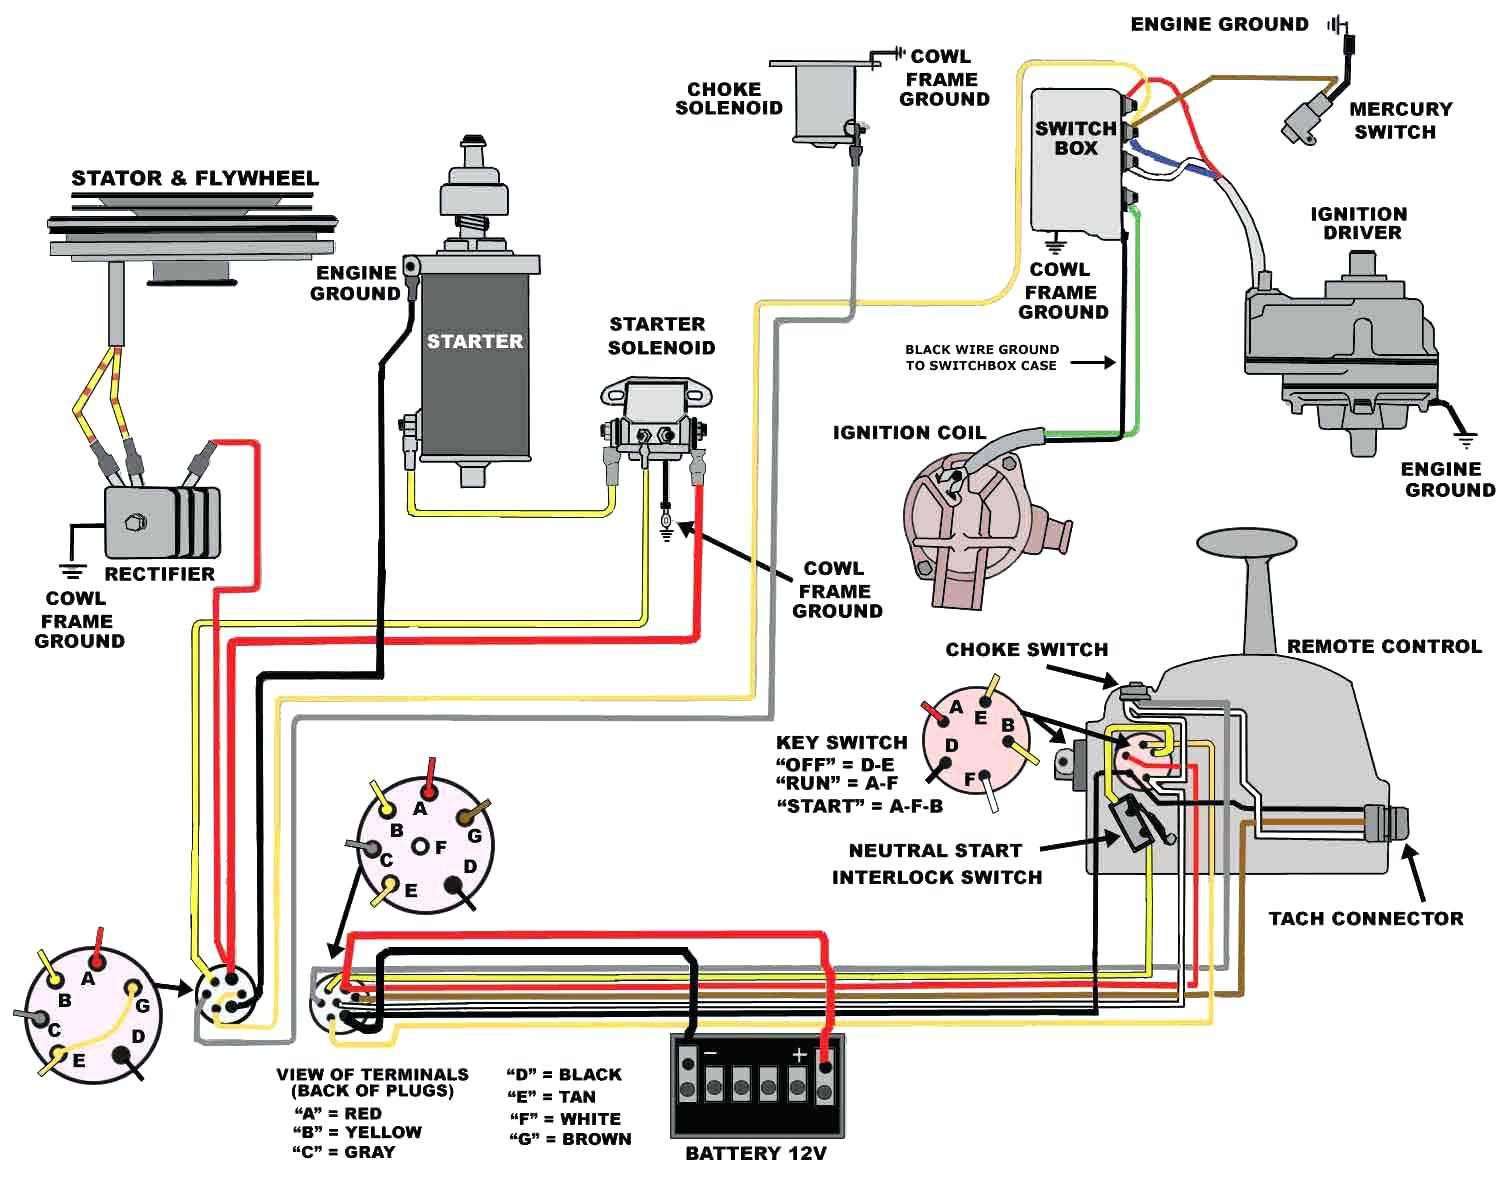 yamaha key switch wiring diagram Download-boat wiring diagram pdf unique for key switch on ignition wiri rh sbrowne me wiring a key switch on a yamaha golf cart wiring up a key switch 9-s